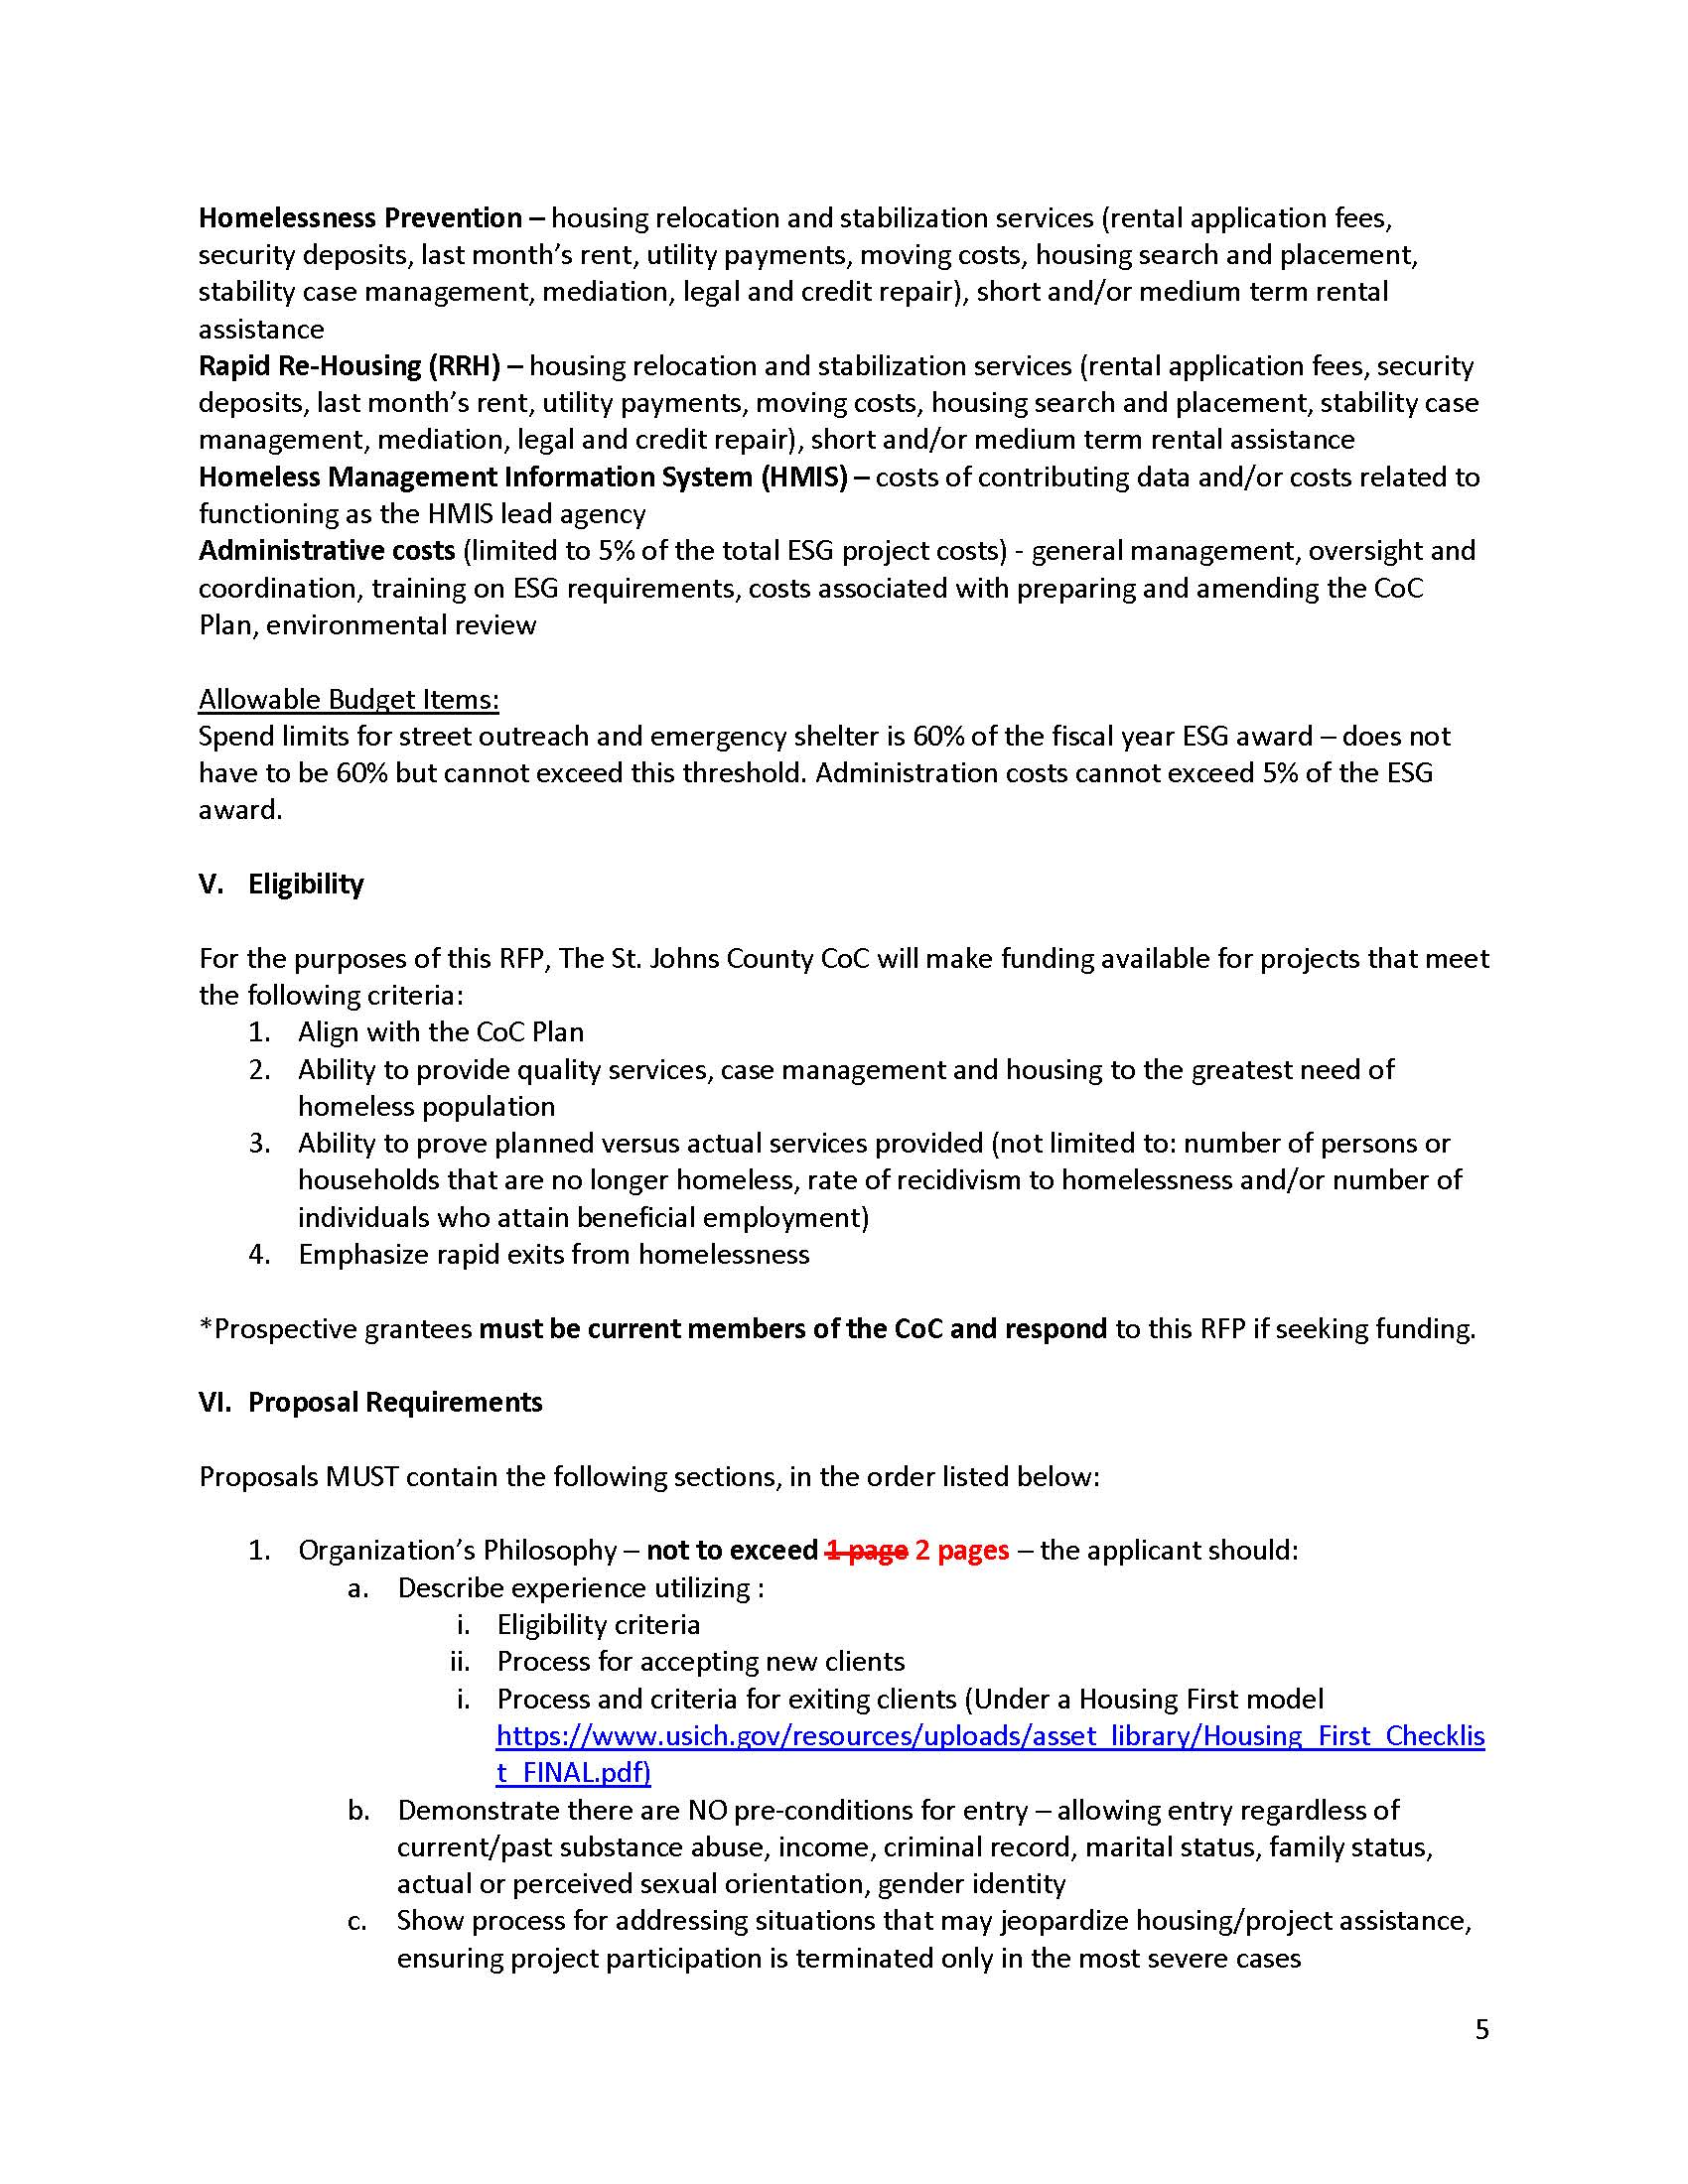 2019 RFP - Final (updated)_Page_05.jpg